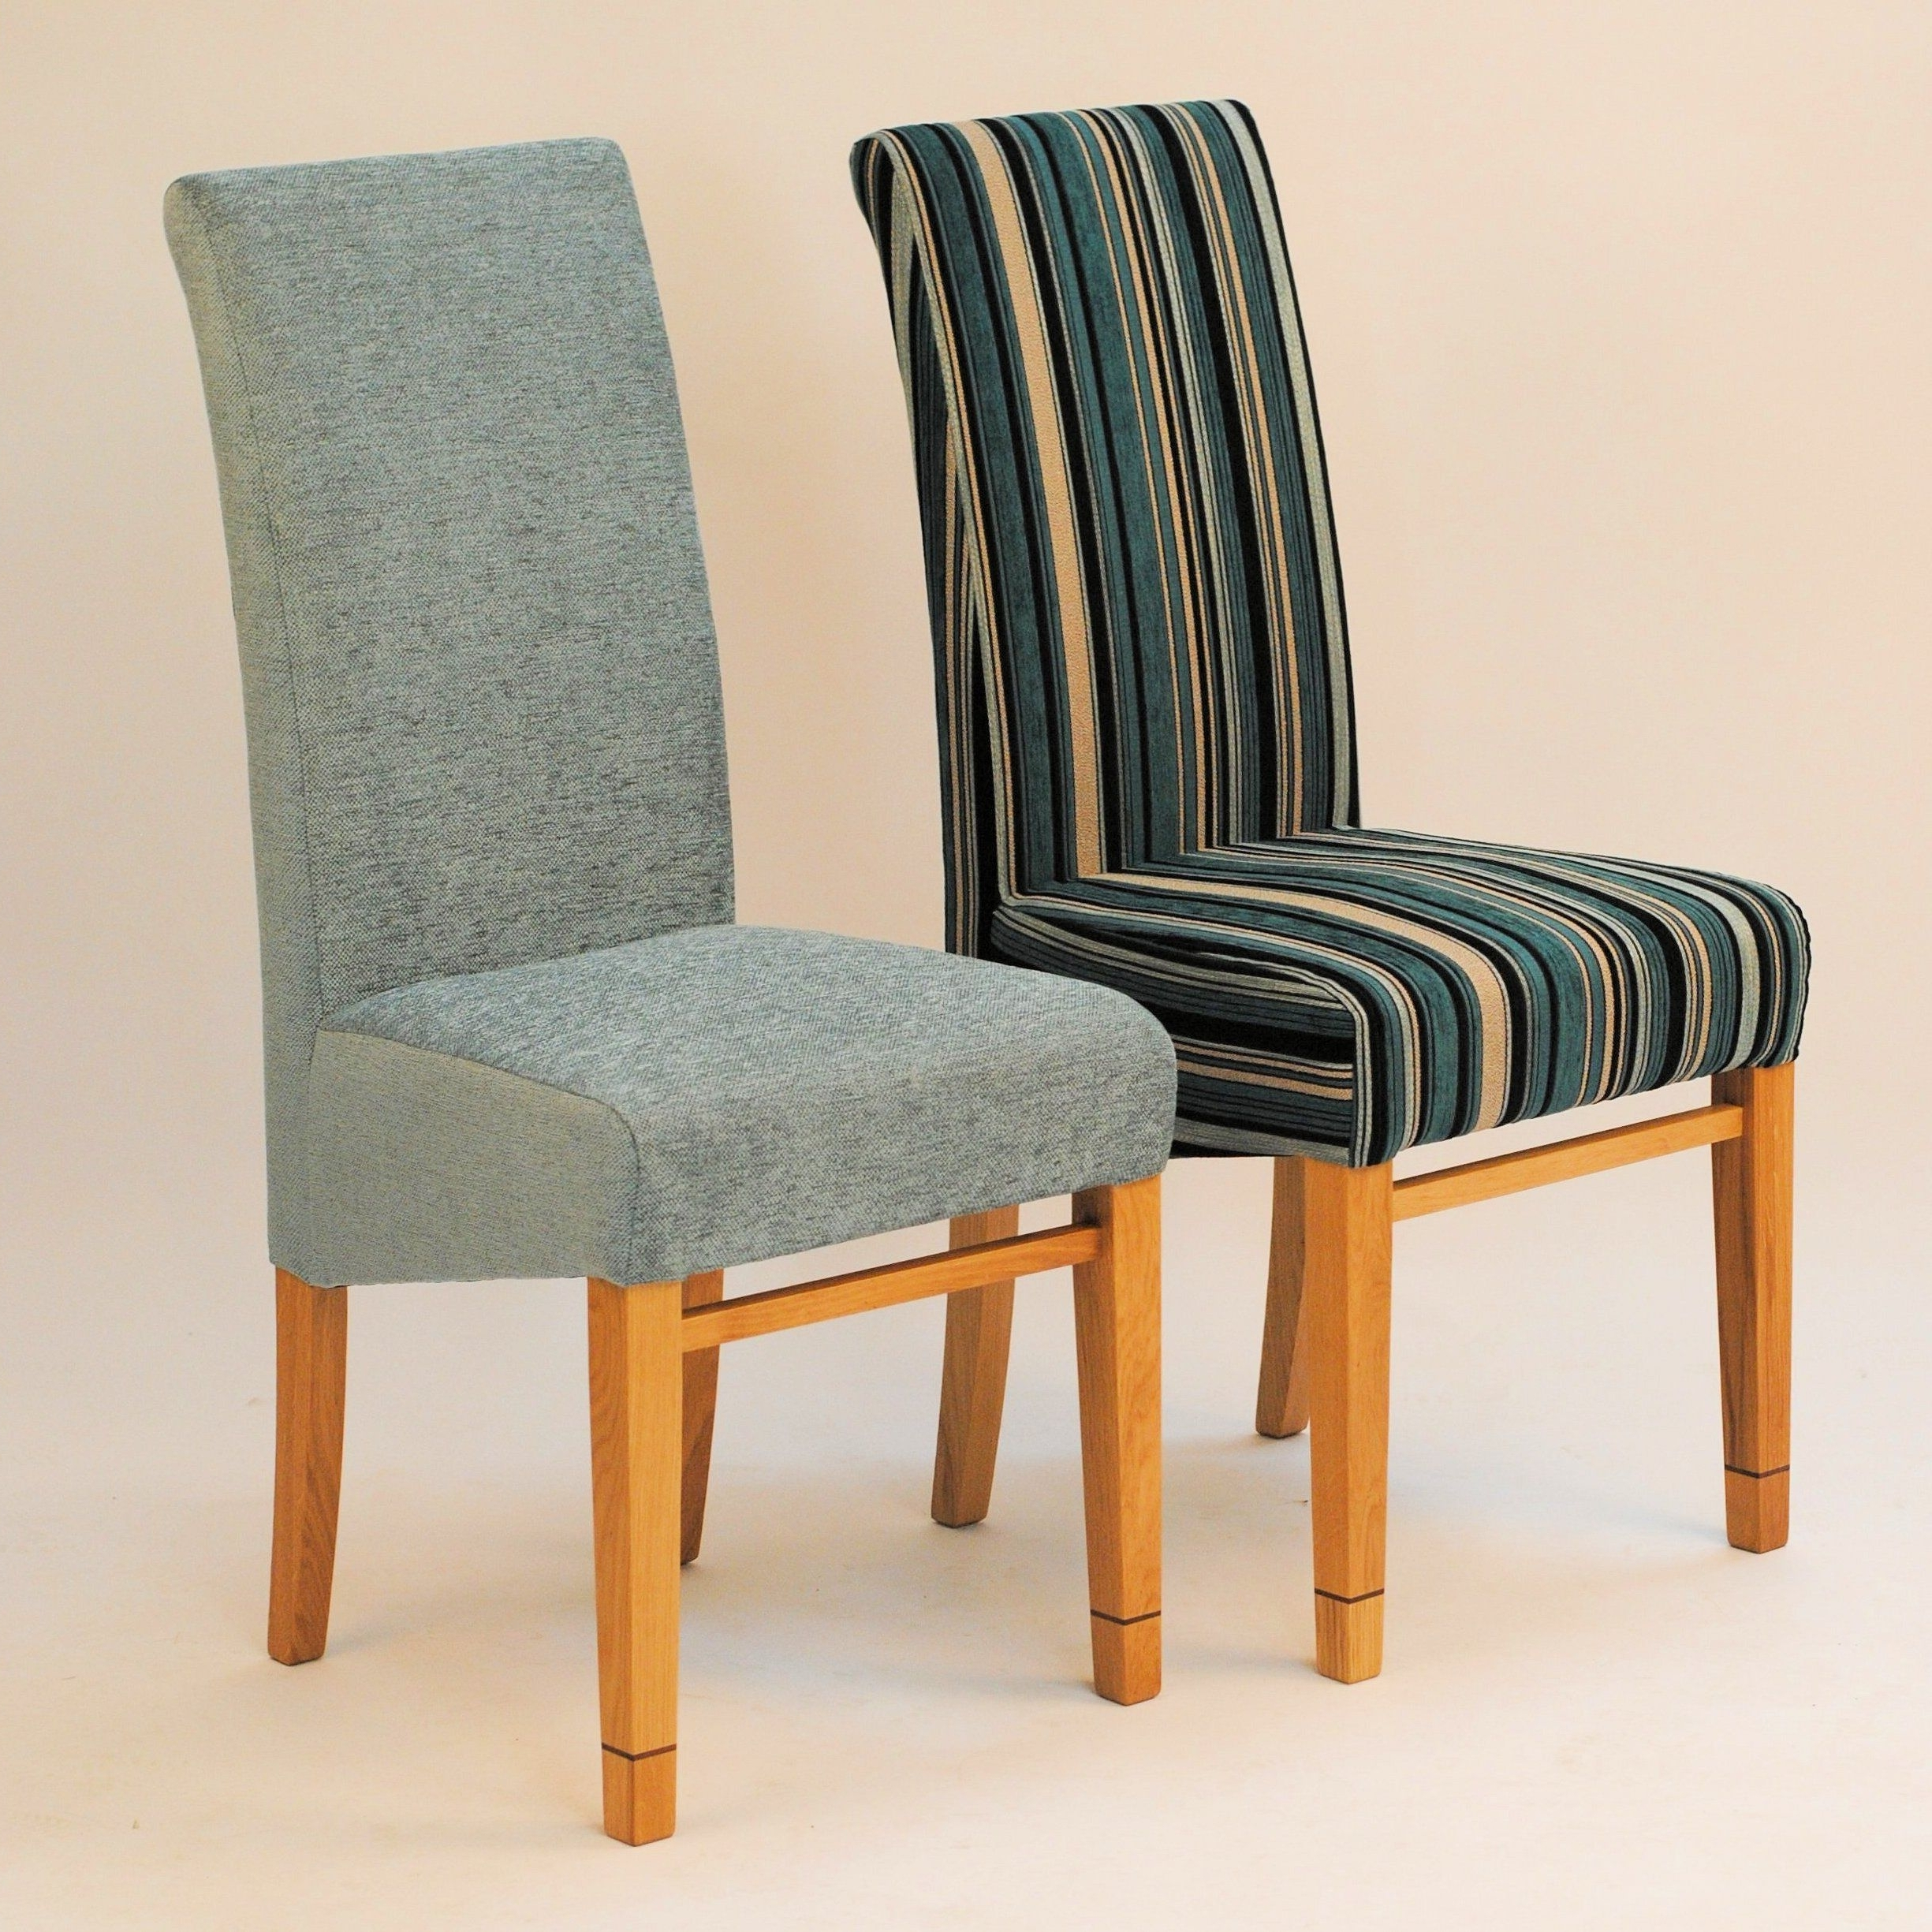 Recent A Pair Of Dining Chairs – Tanner Furniture Designs With Regard To Oak Dining Chairs (View 25 of 25)